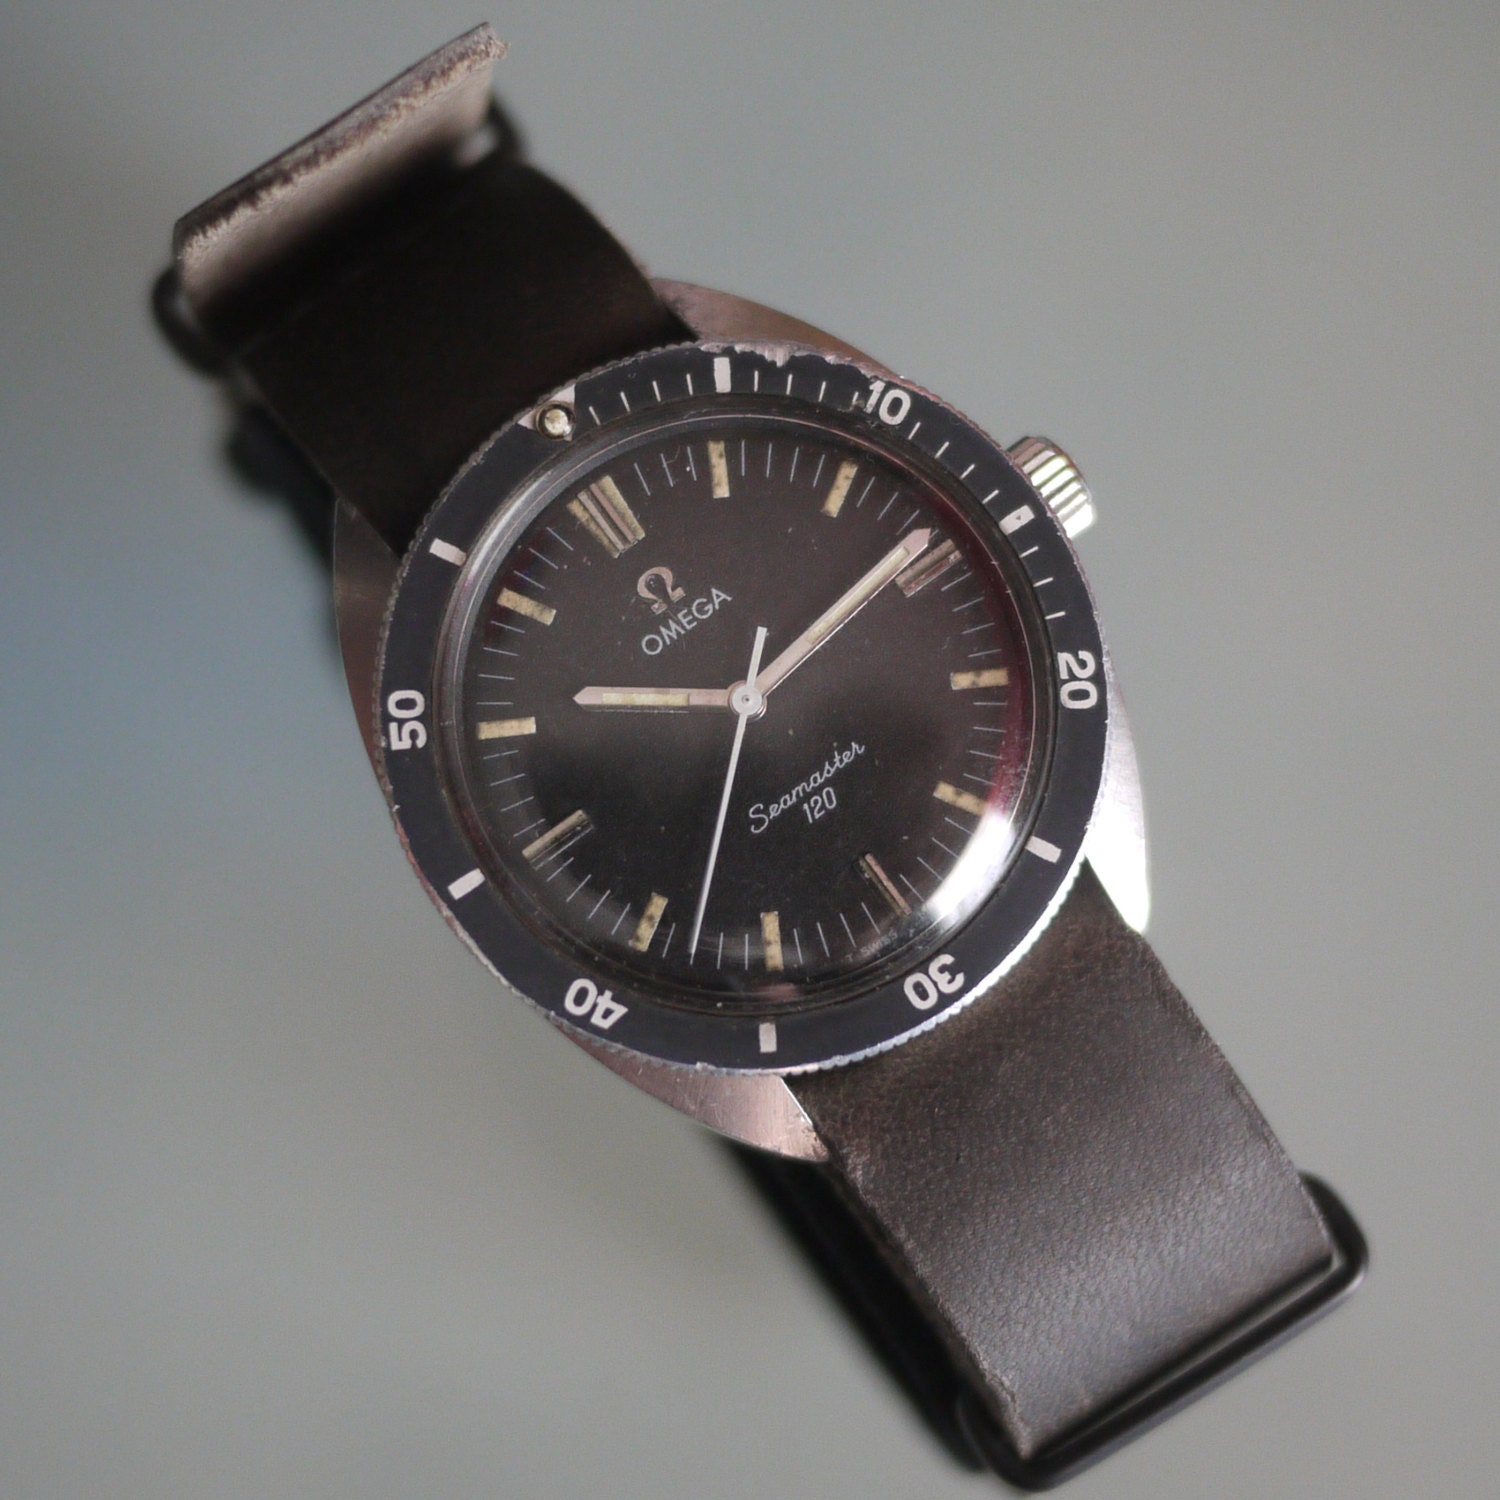 Vintage omega seamaster 120 dive watch from the 60 39 s - Omega dive watch ...